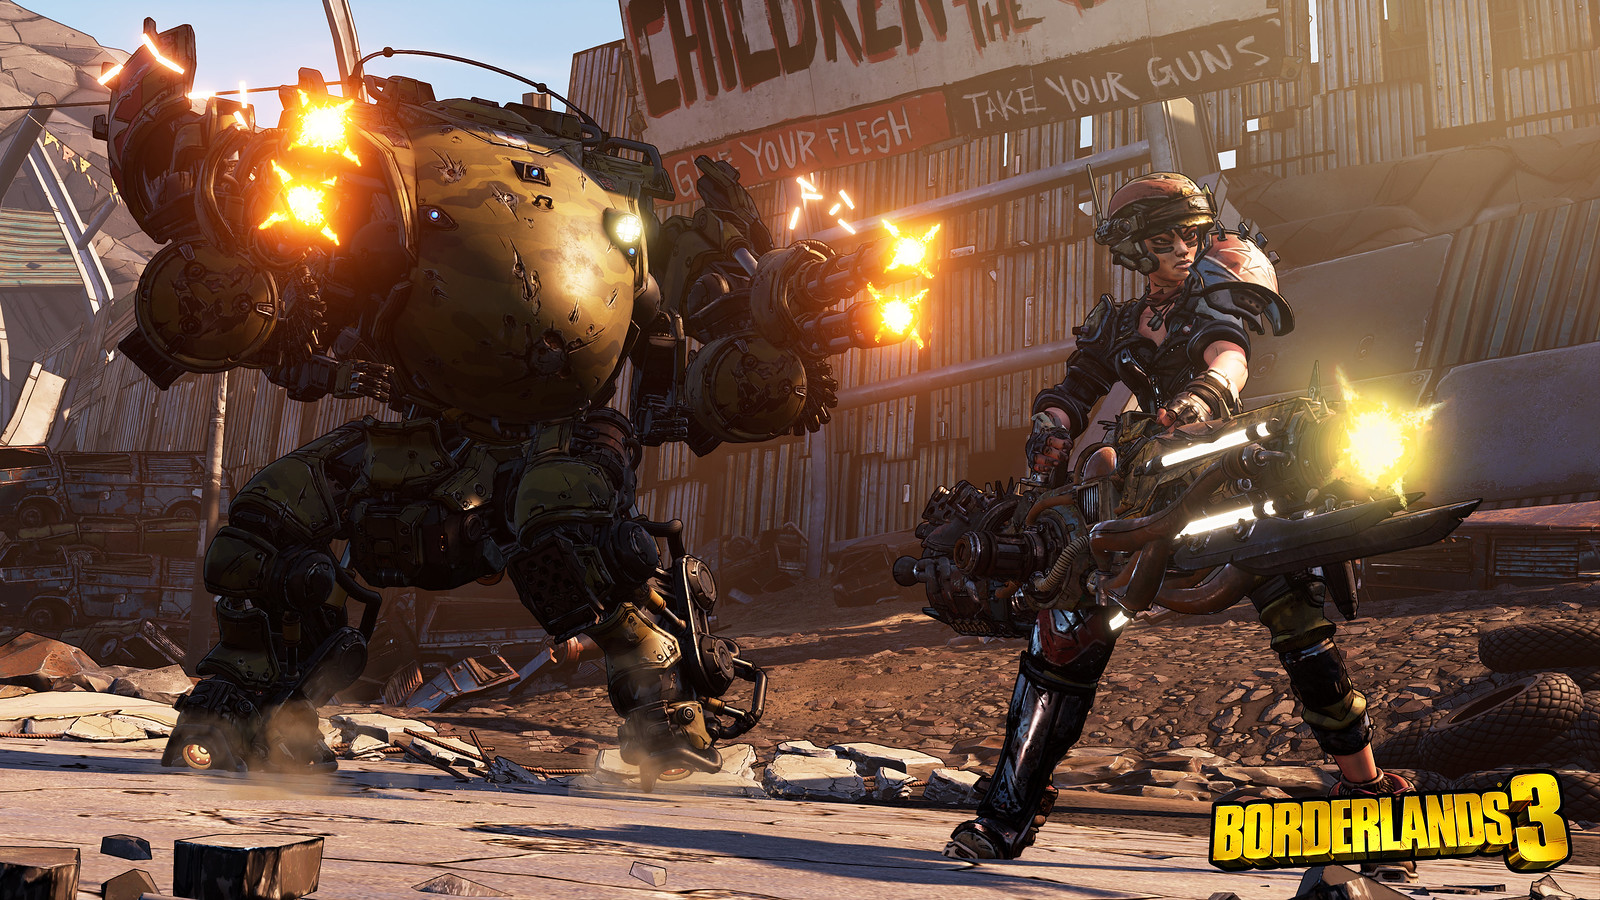 Borderlands 3 Hits PS4 September 13, Watch The New